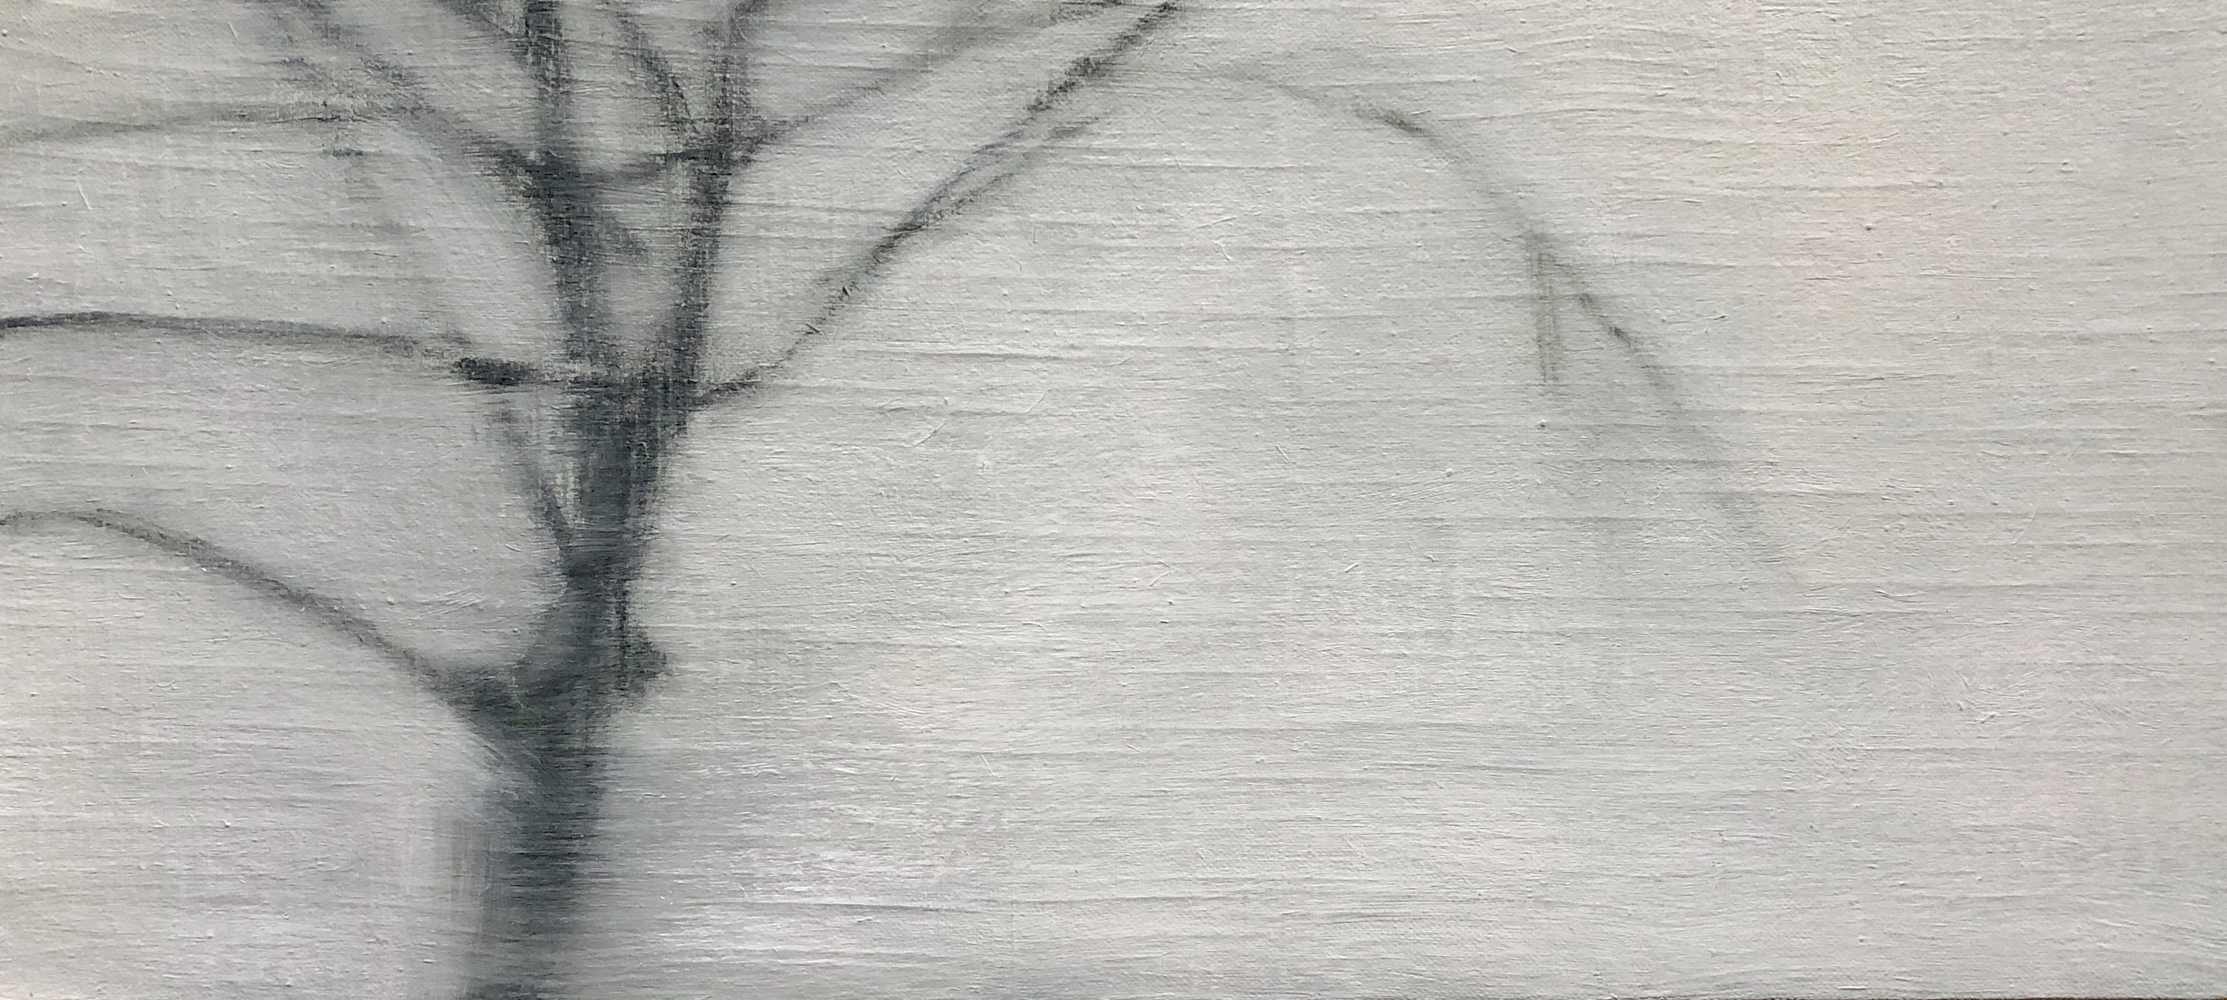 Linda Davidson, World's End #6, 2019, oil on cotton on panel, 10 x 22 inches, $850.